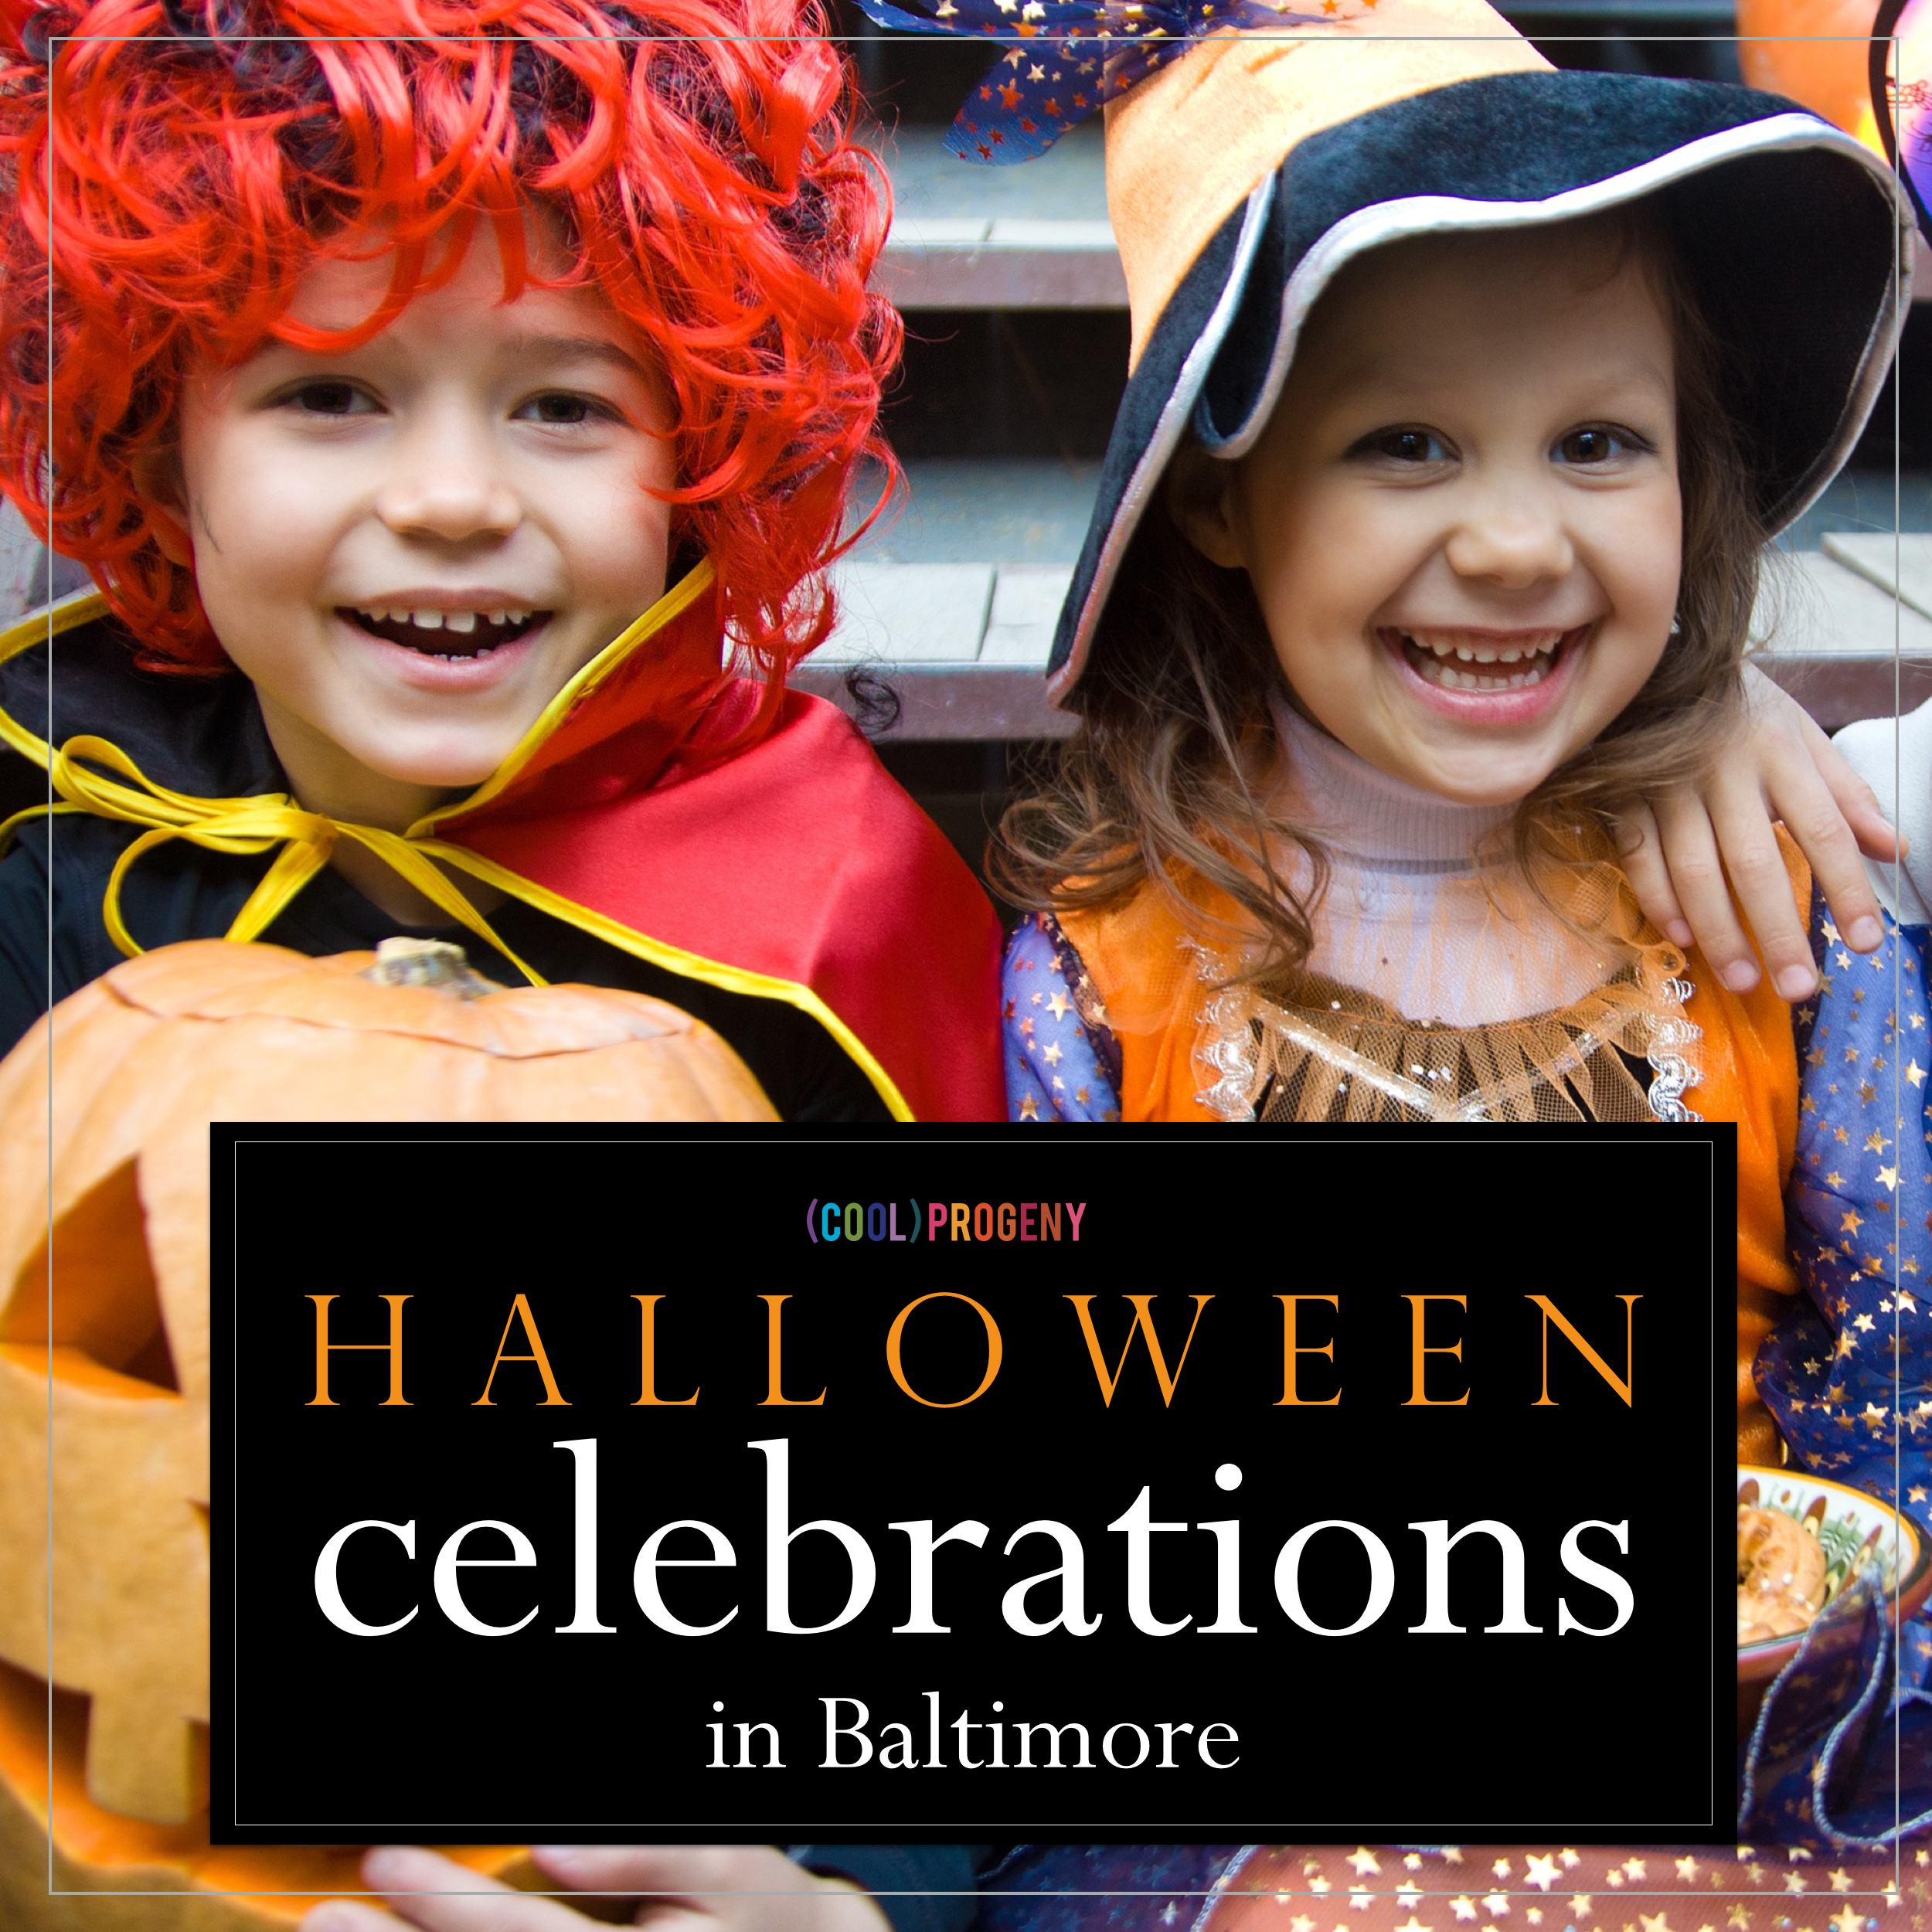 (cool) halloween events for kids in Baltimore - (cool) progeny